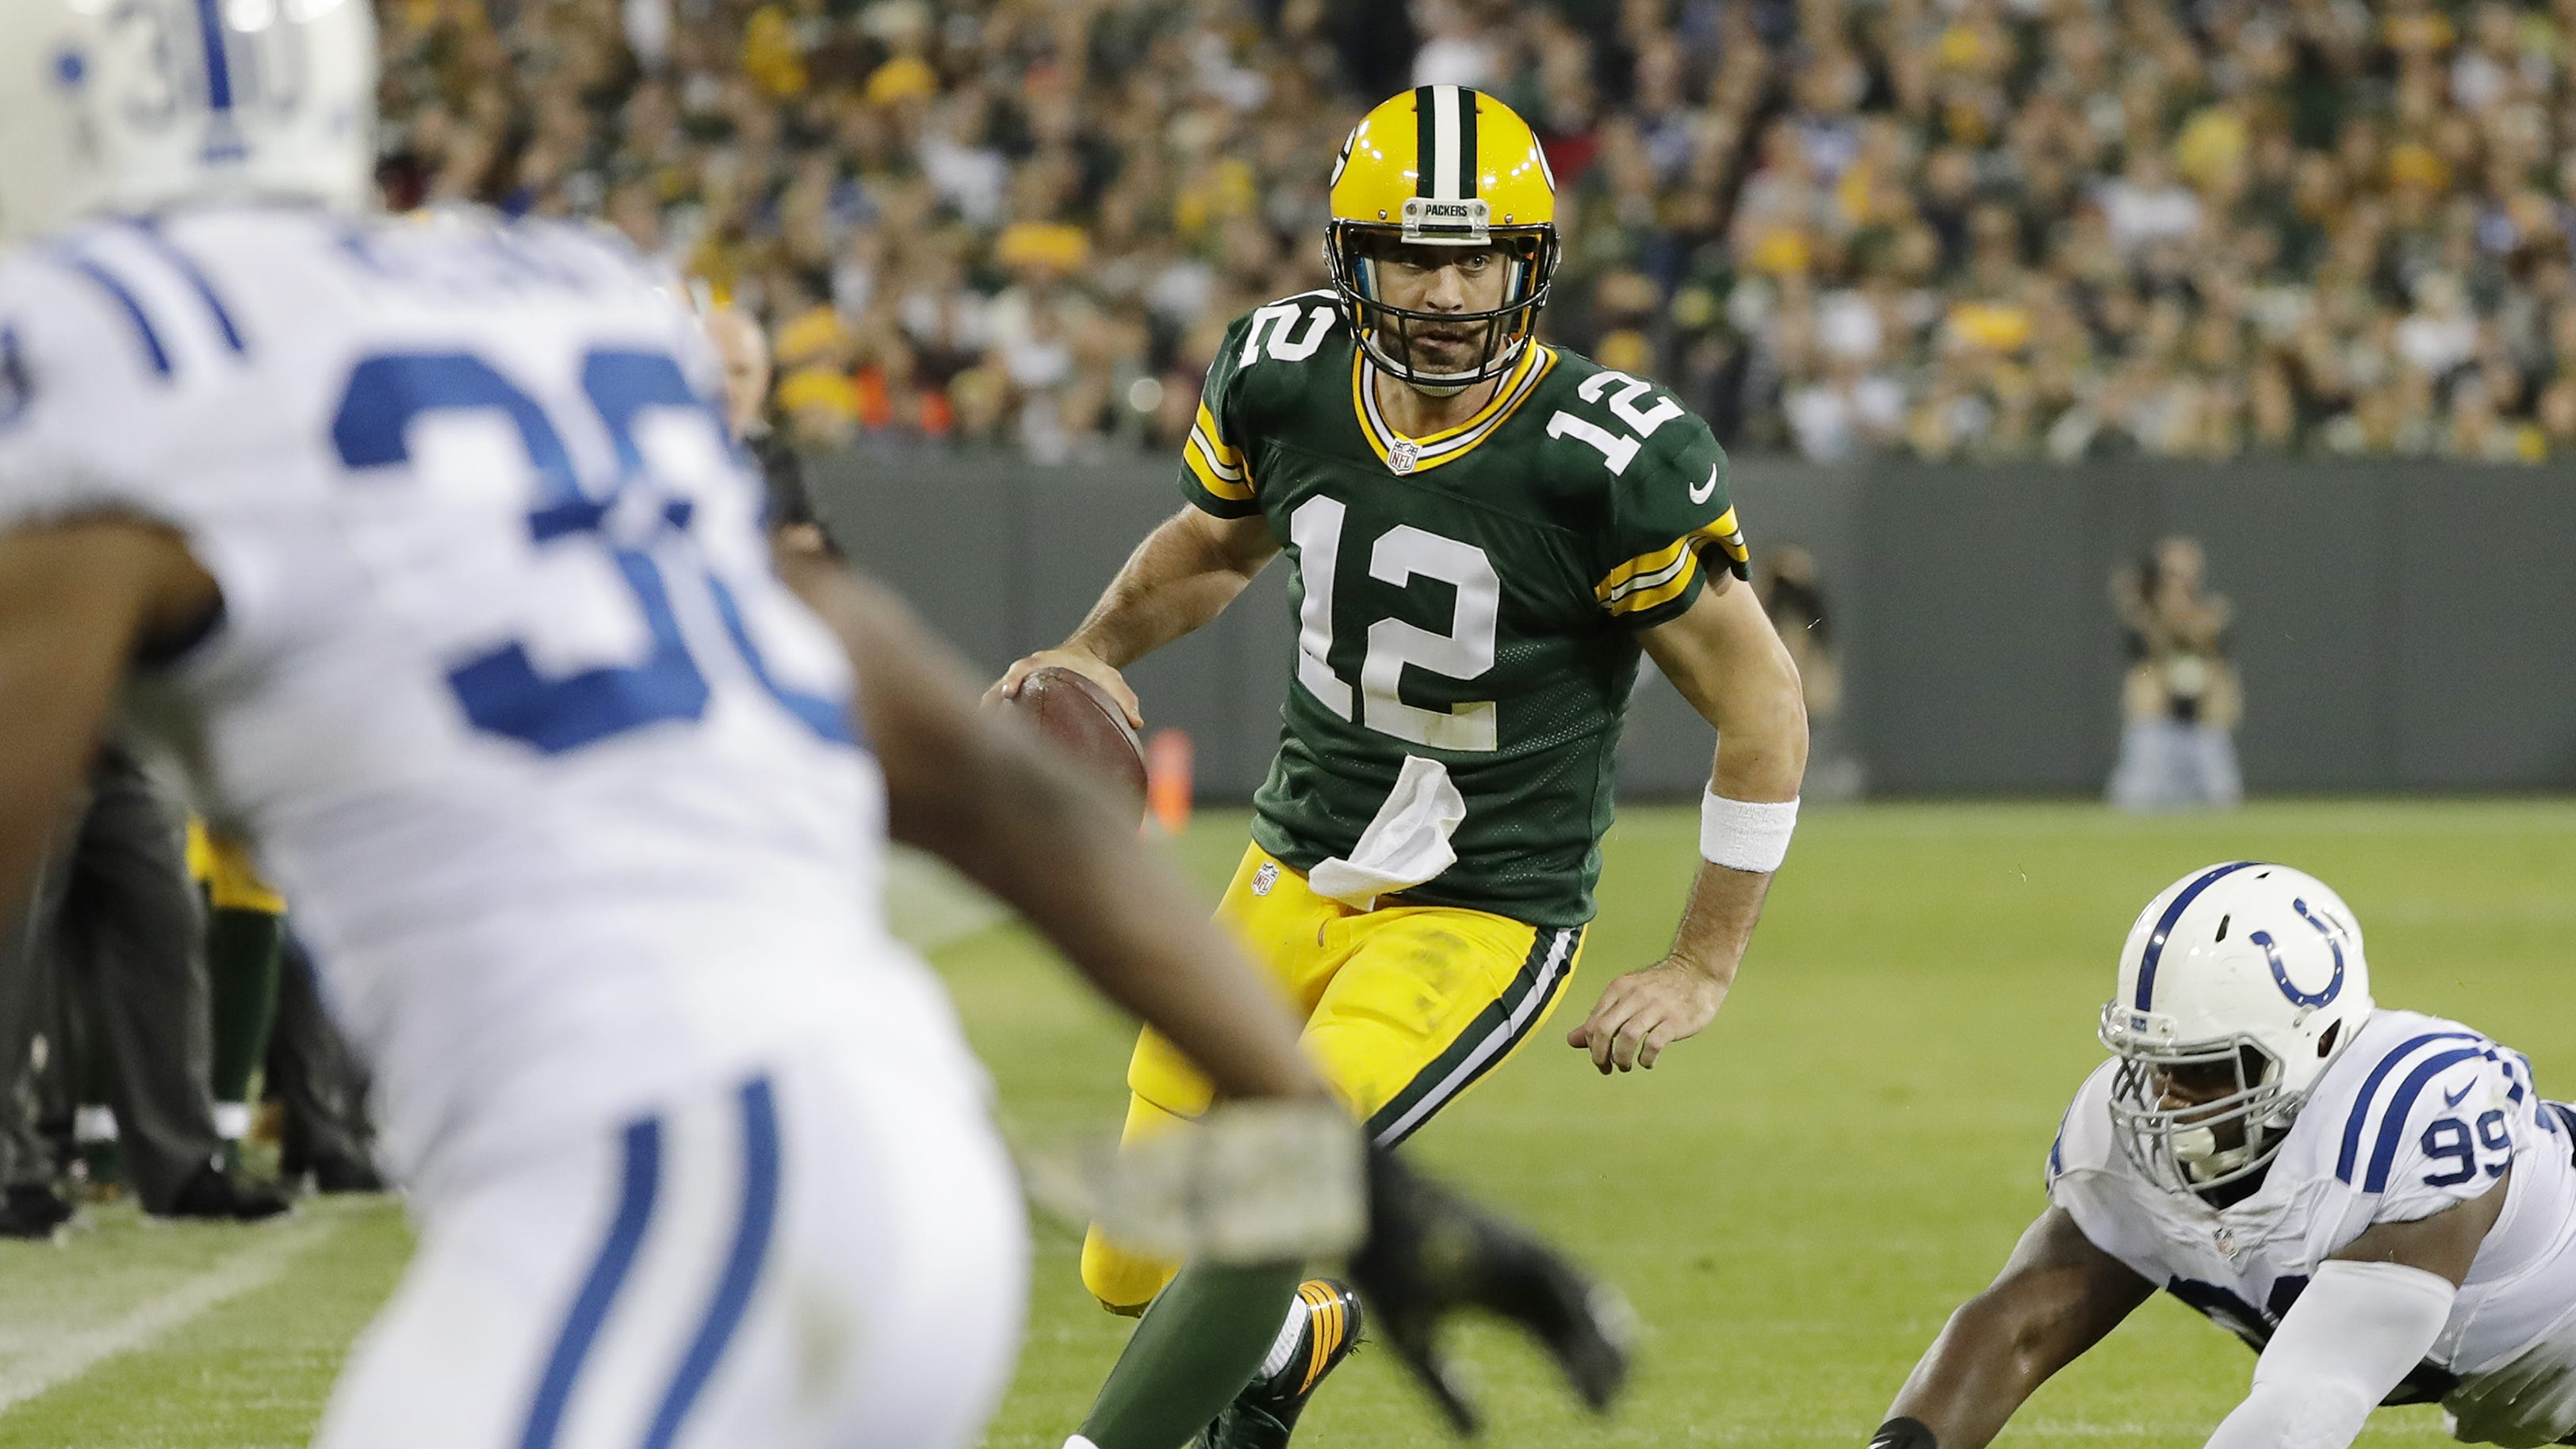 As of now, Packers fans have one more chance to watch team in person